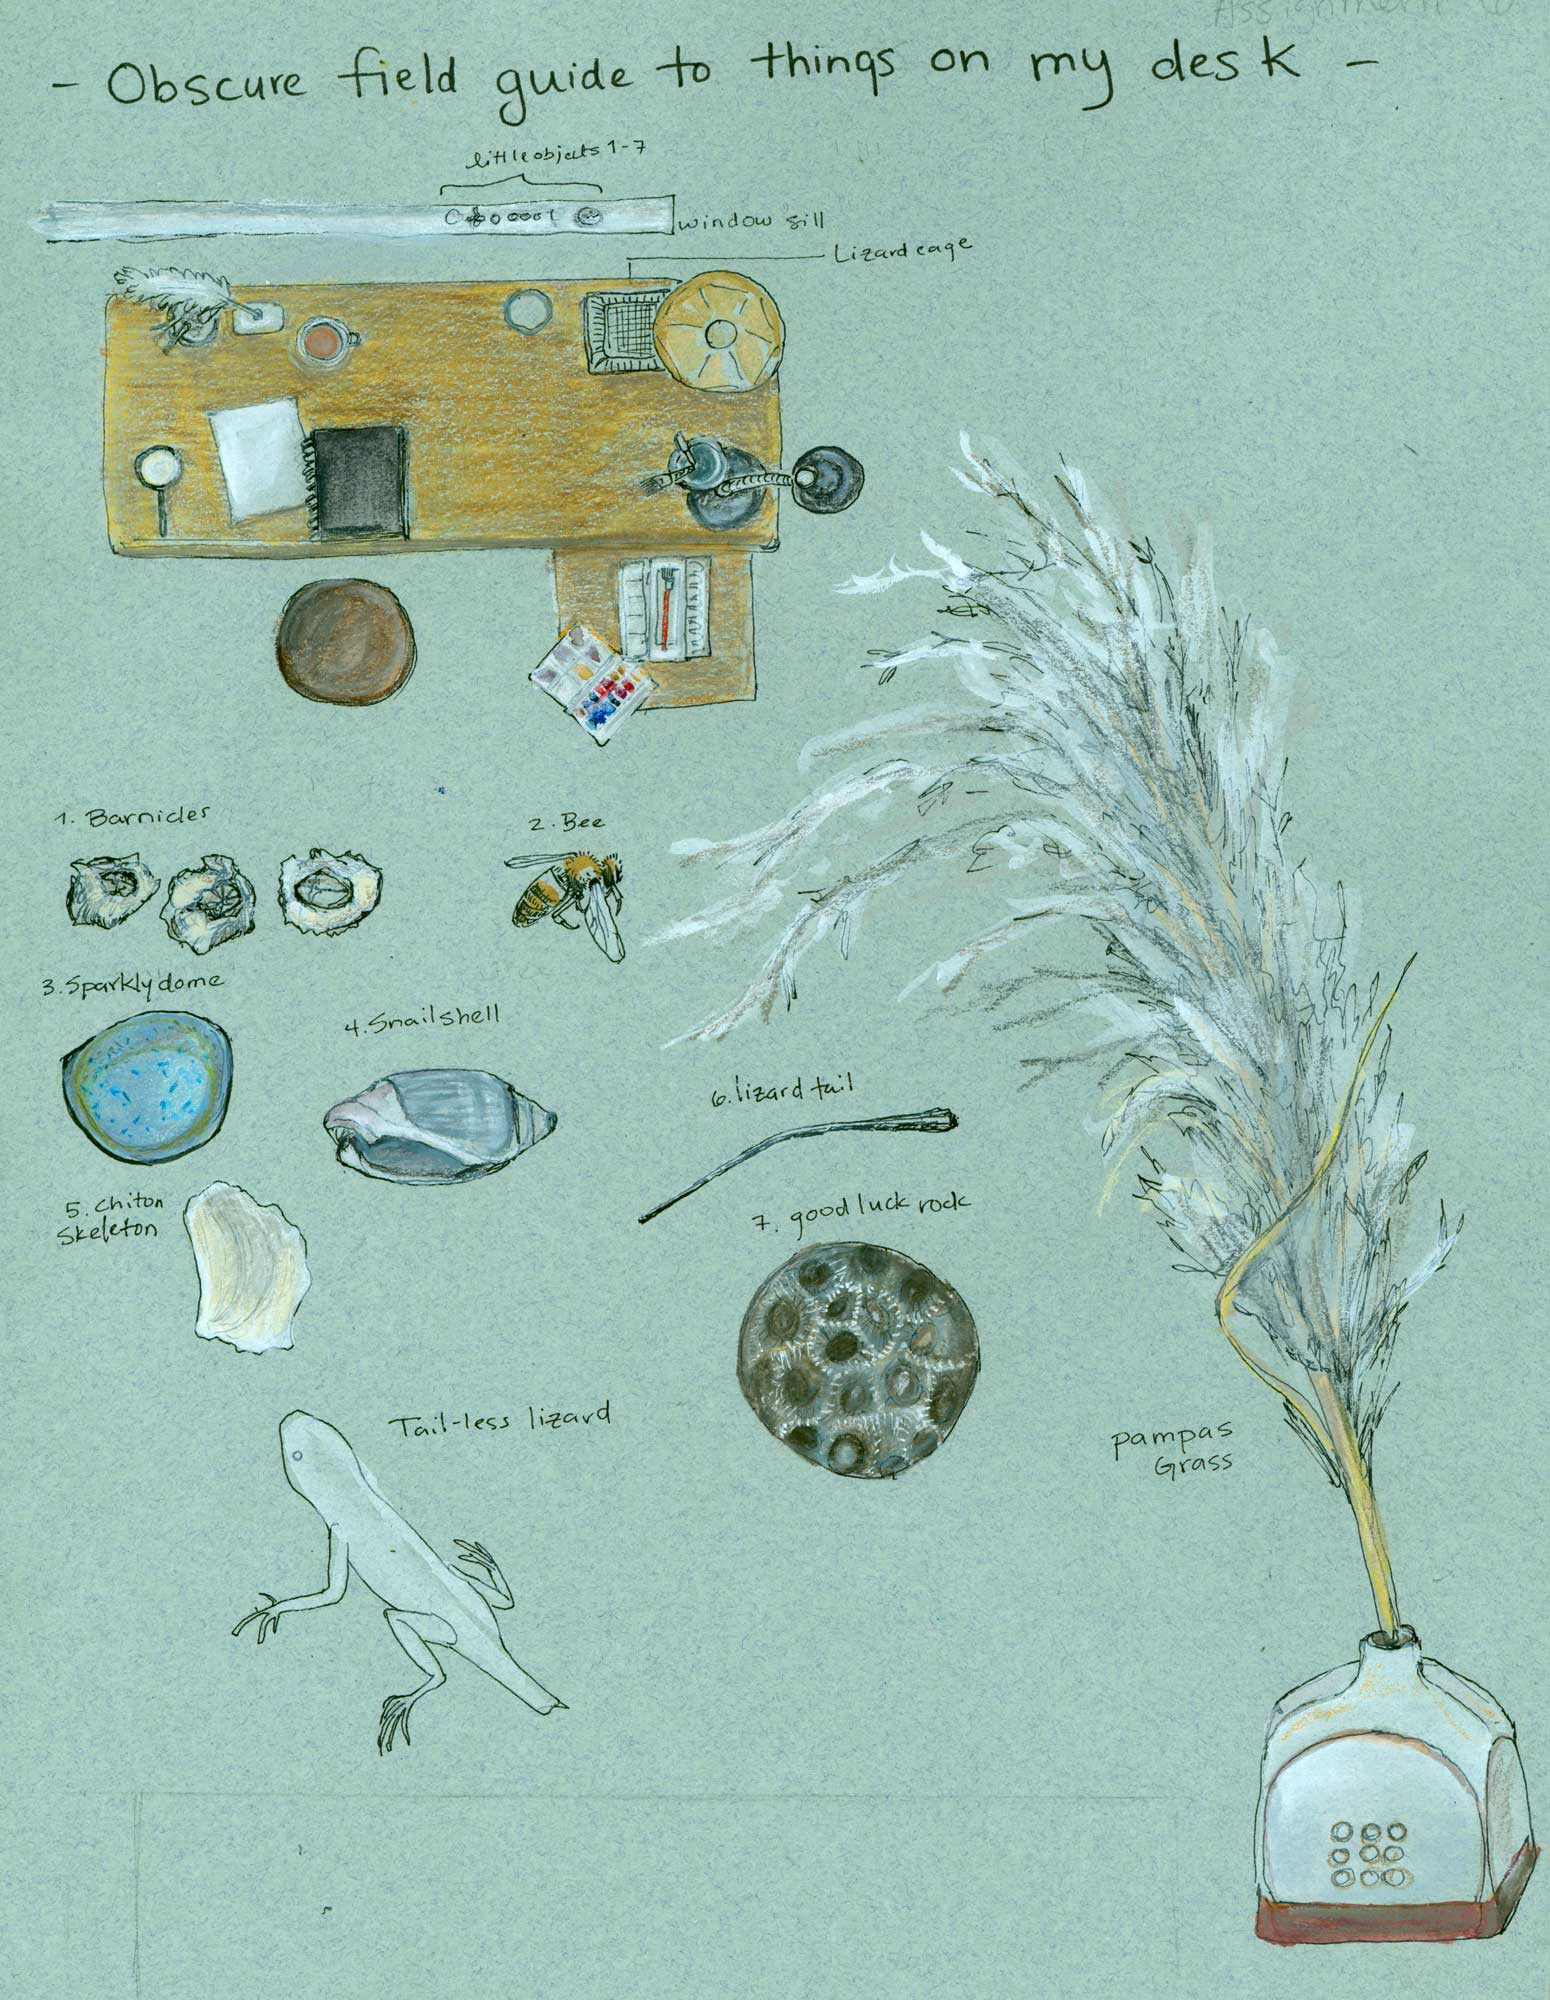 Obscure field guide to things on my desk, from 2009, when I was doing my Certificate in Science Illustration at CSUMB.